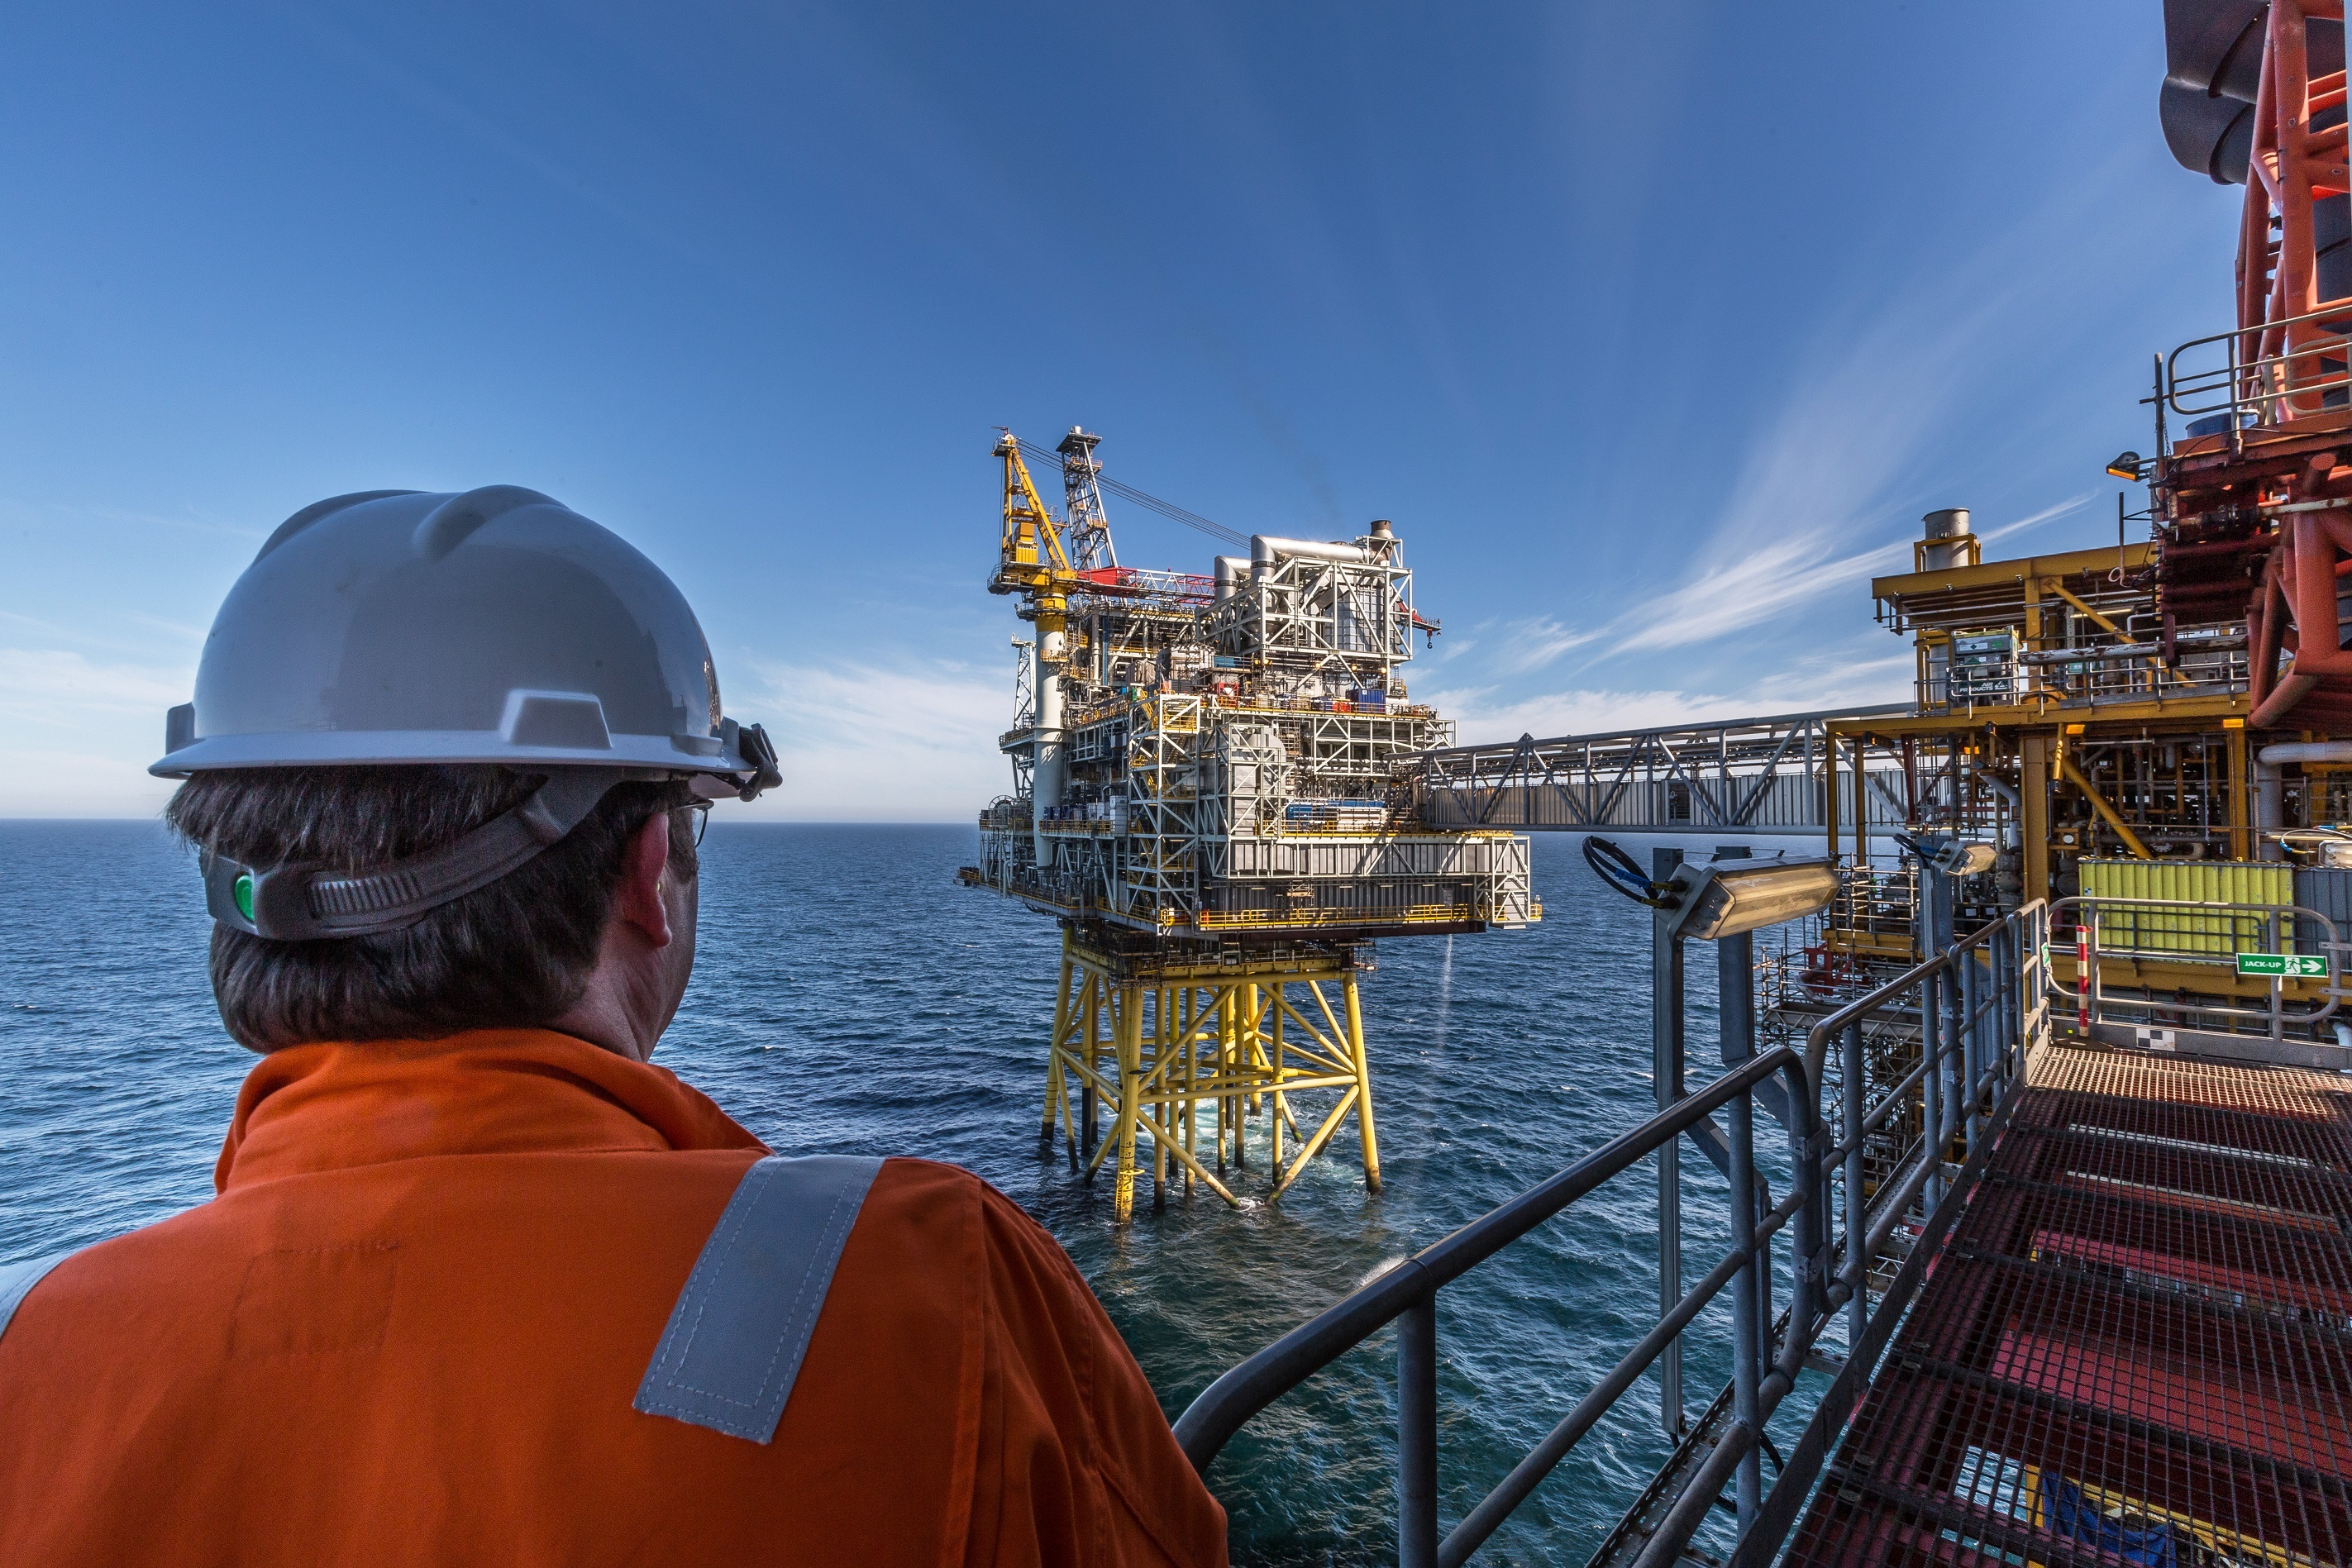 The Repsol Sinopec Resourses UK Montrose Alpha platform